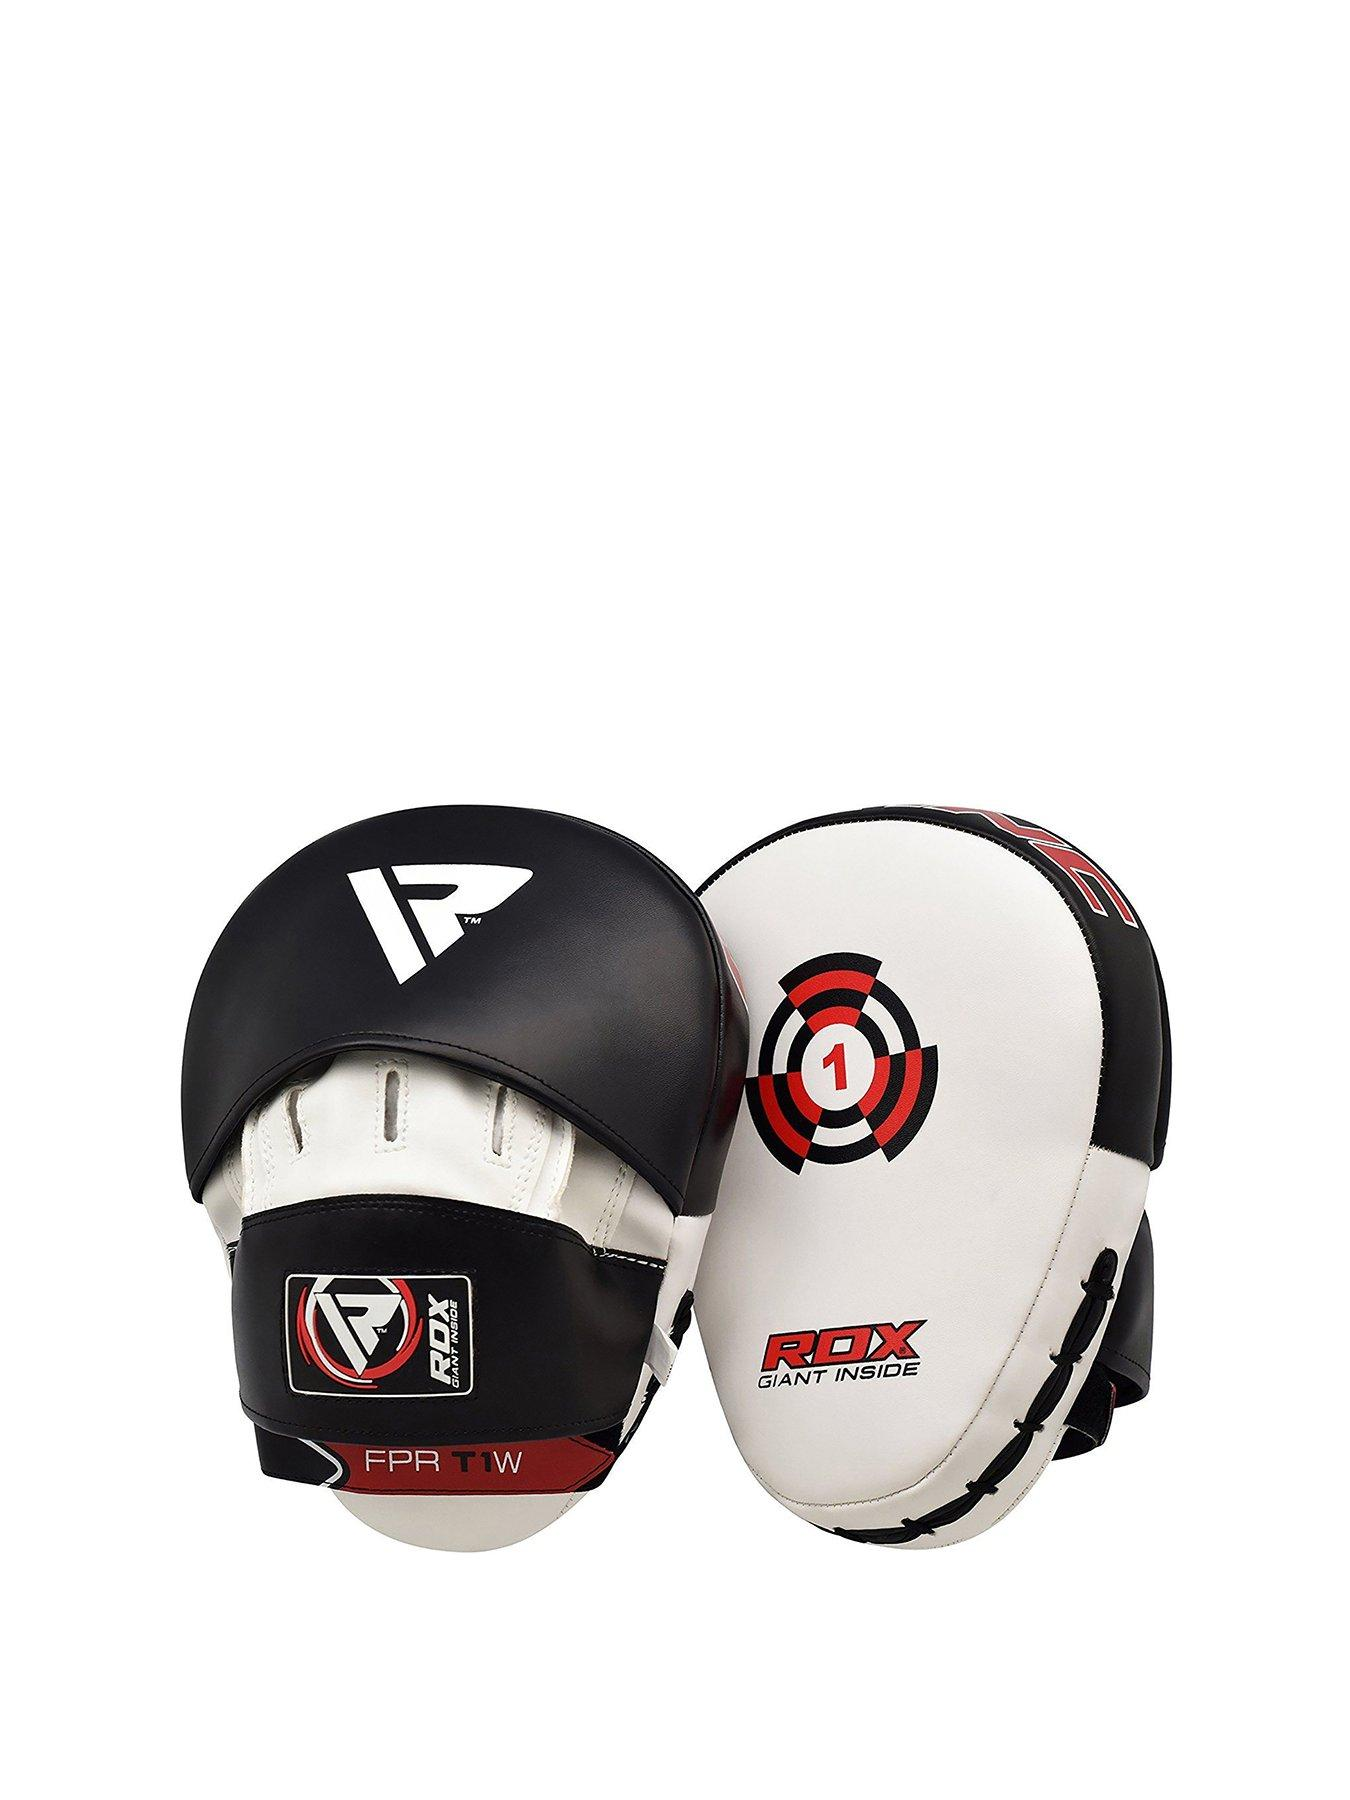 Lonsdale Jab Glove Pad Set Sports Leisure Synthetic Material Gloves Pads Boxing Black